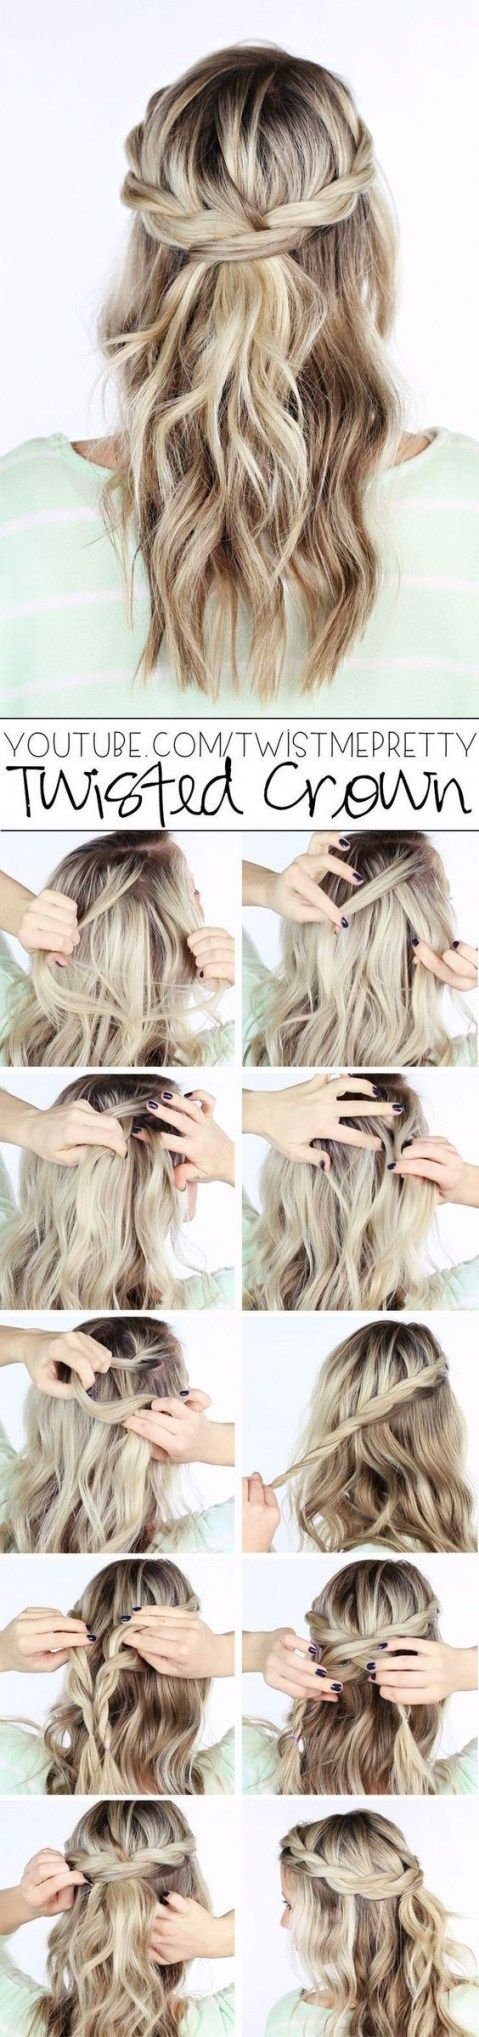 Wedding Guest Hairstyles For Long Hair Pinterest | My Style ...